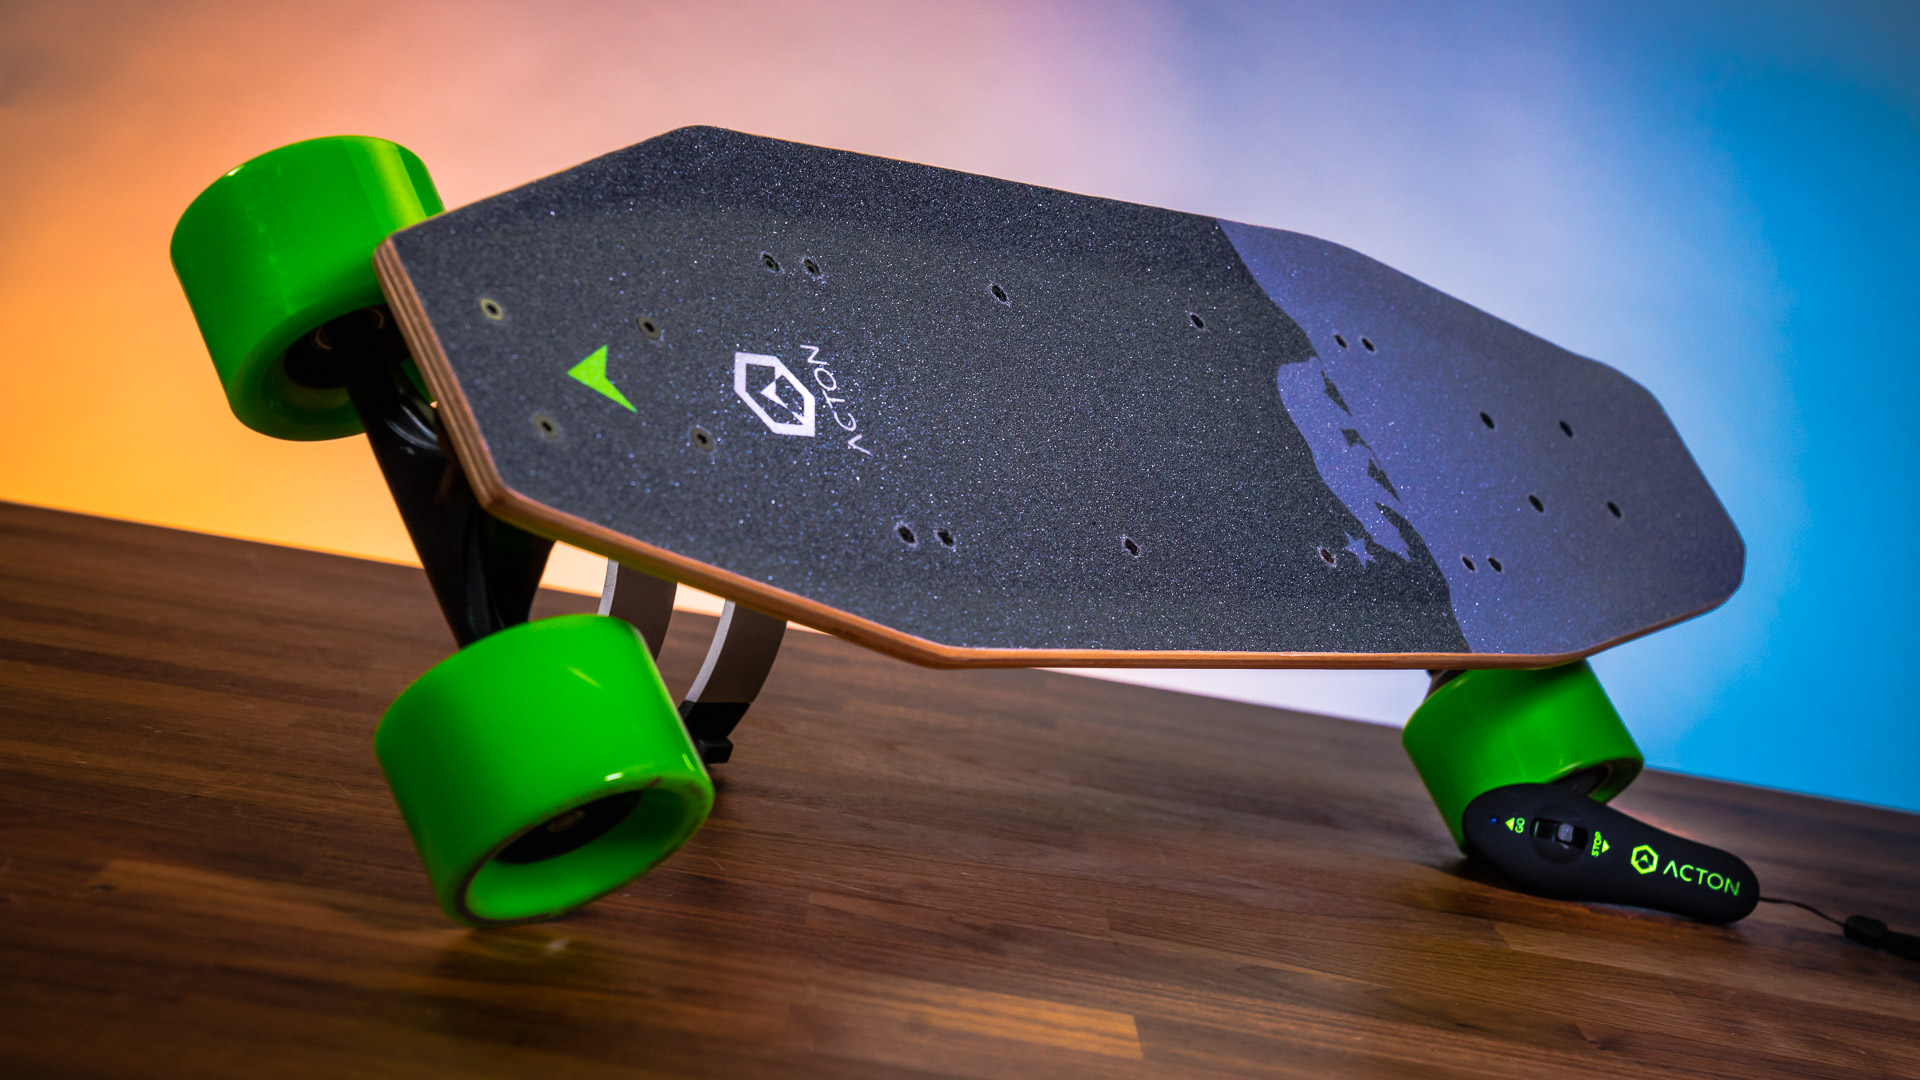 Stepping up the power and range, the BLINK S is one of the next-level electric skateboards with a seven-mile range and max 15mph.